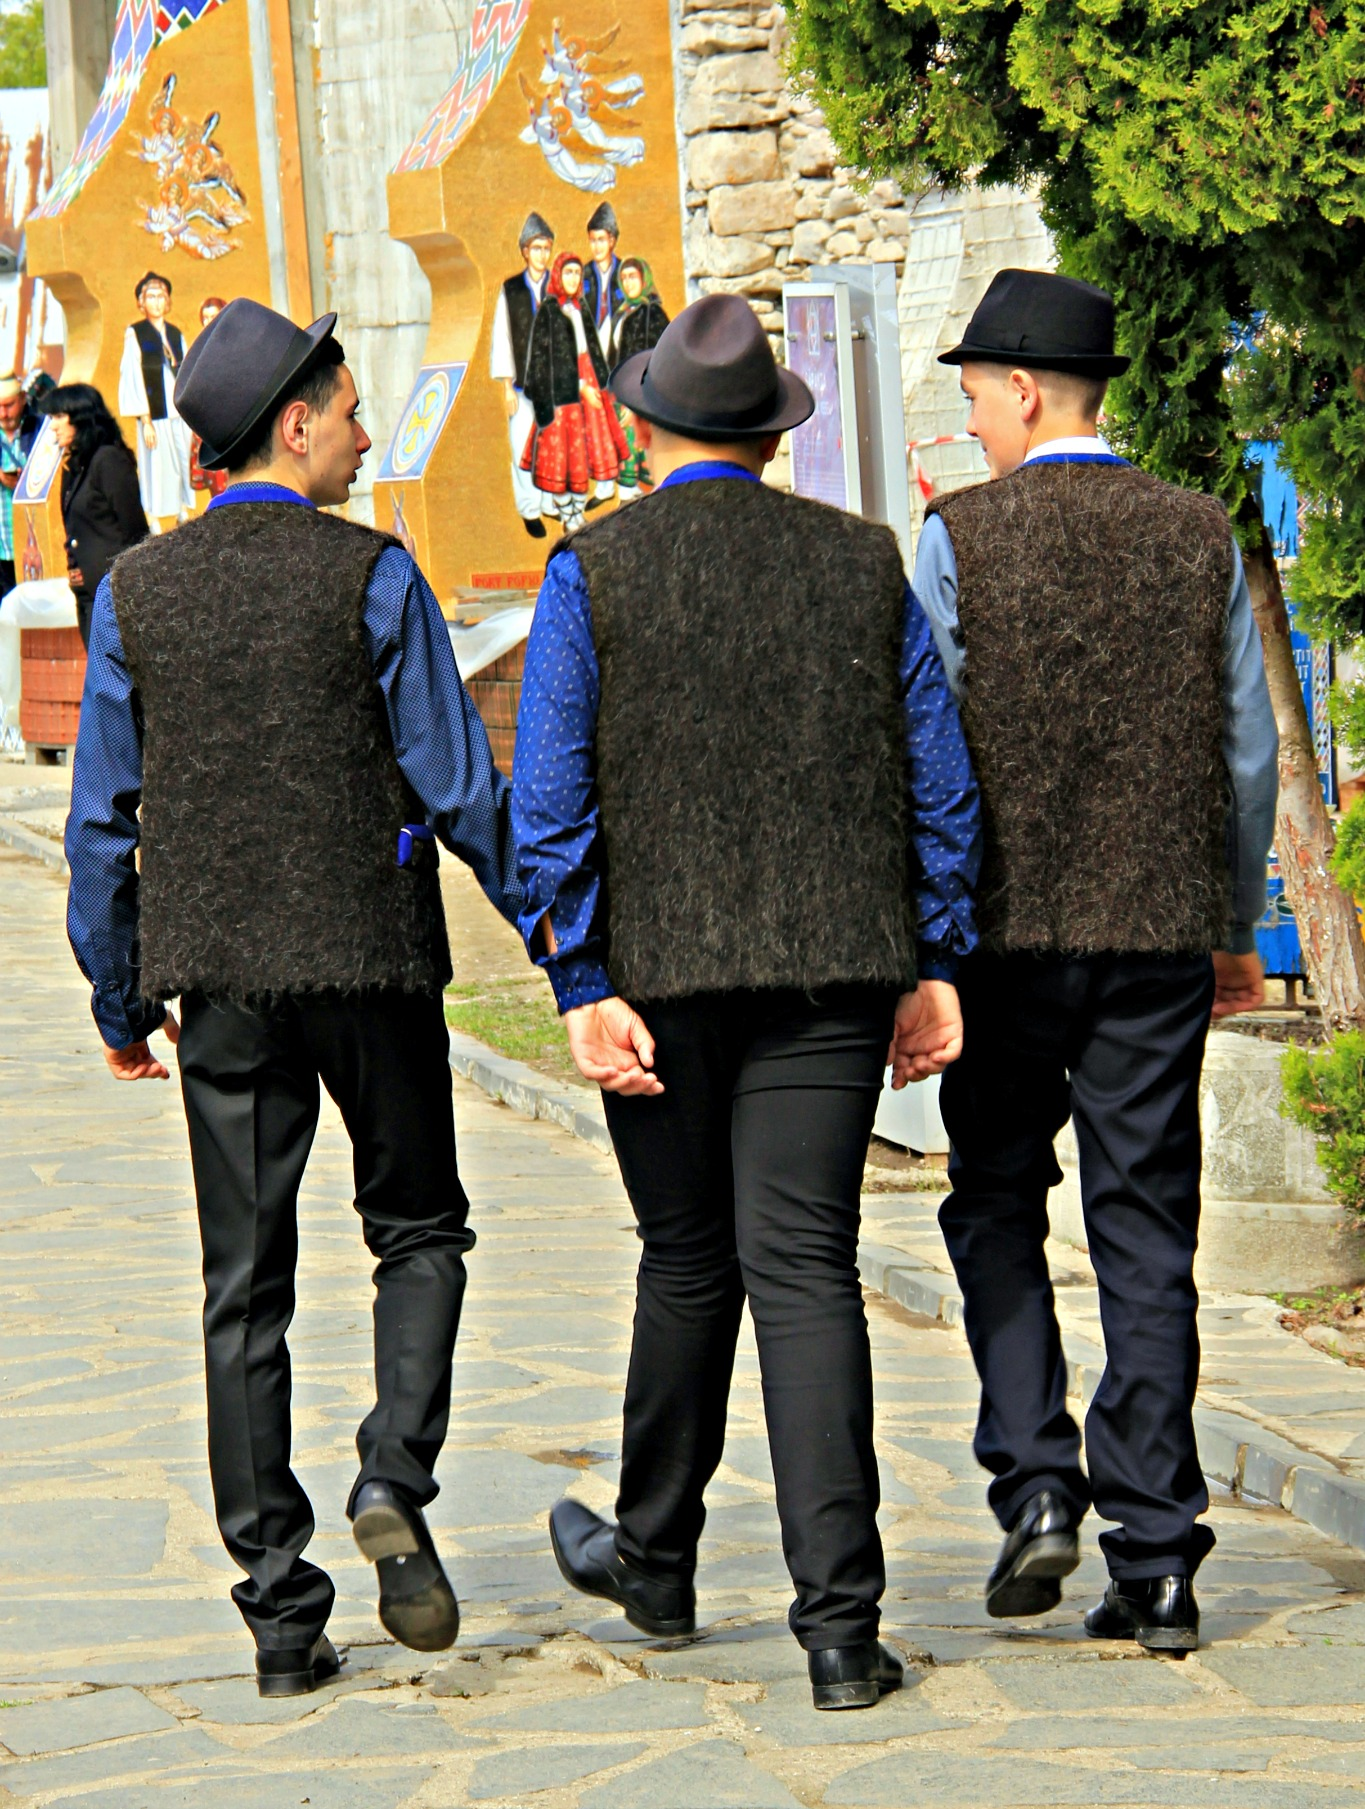 The boys of Săpânţa. Photo by Ovidiu Balaj